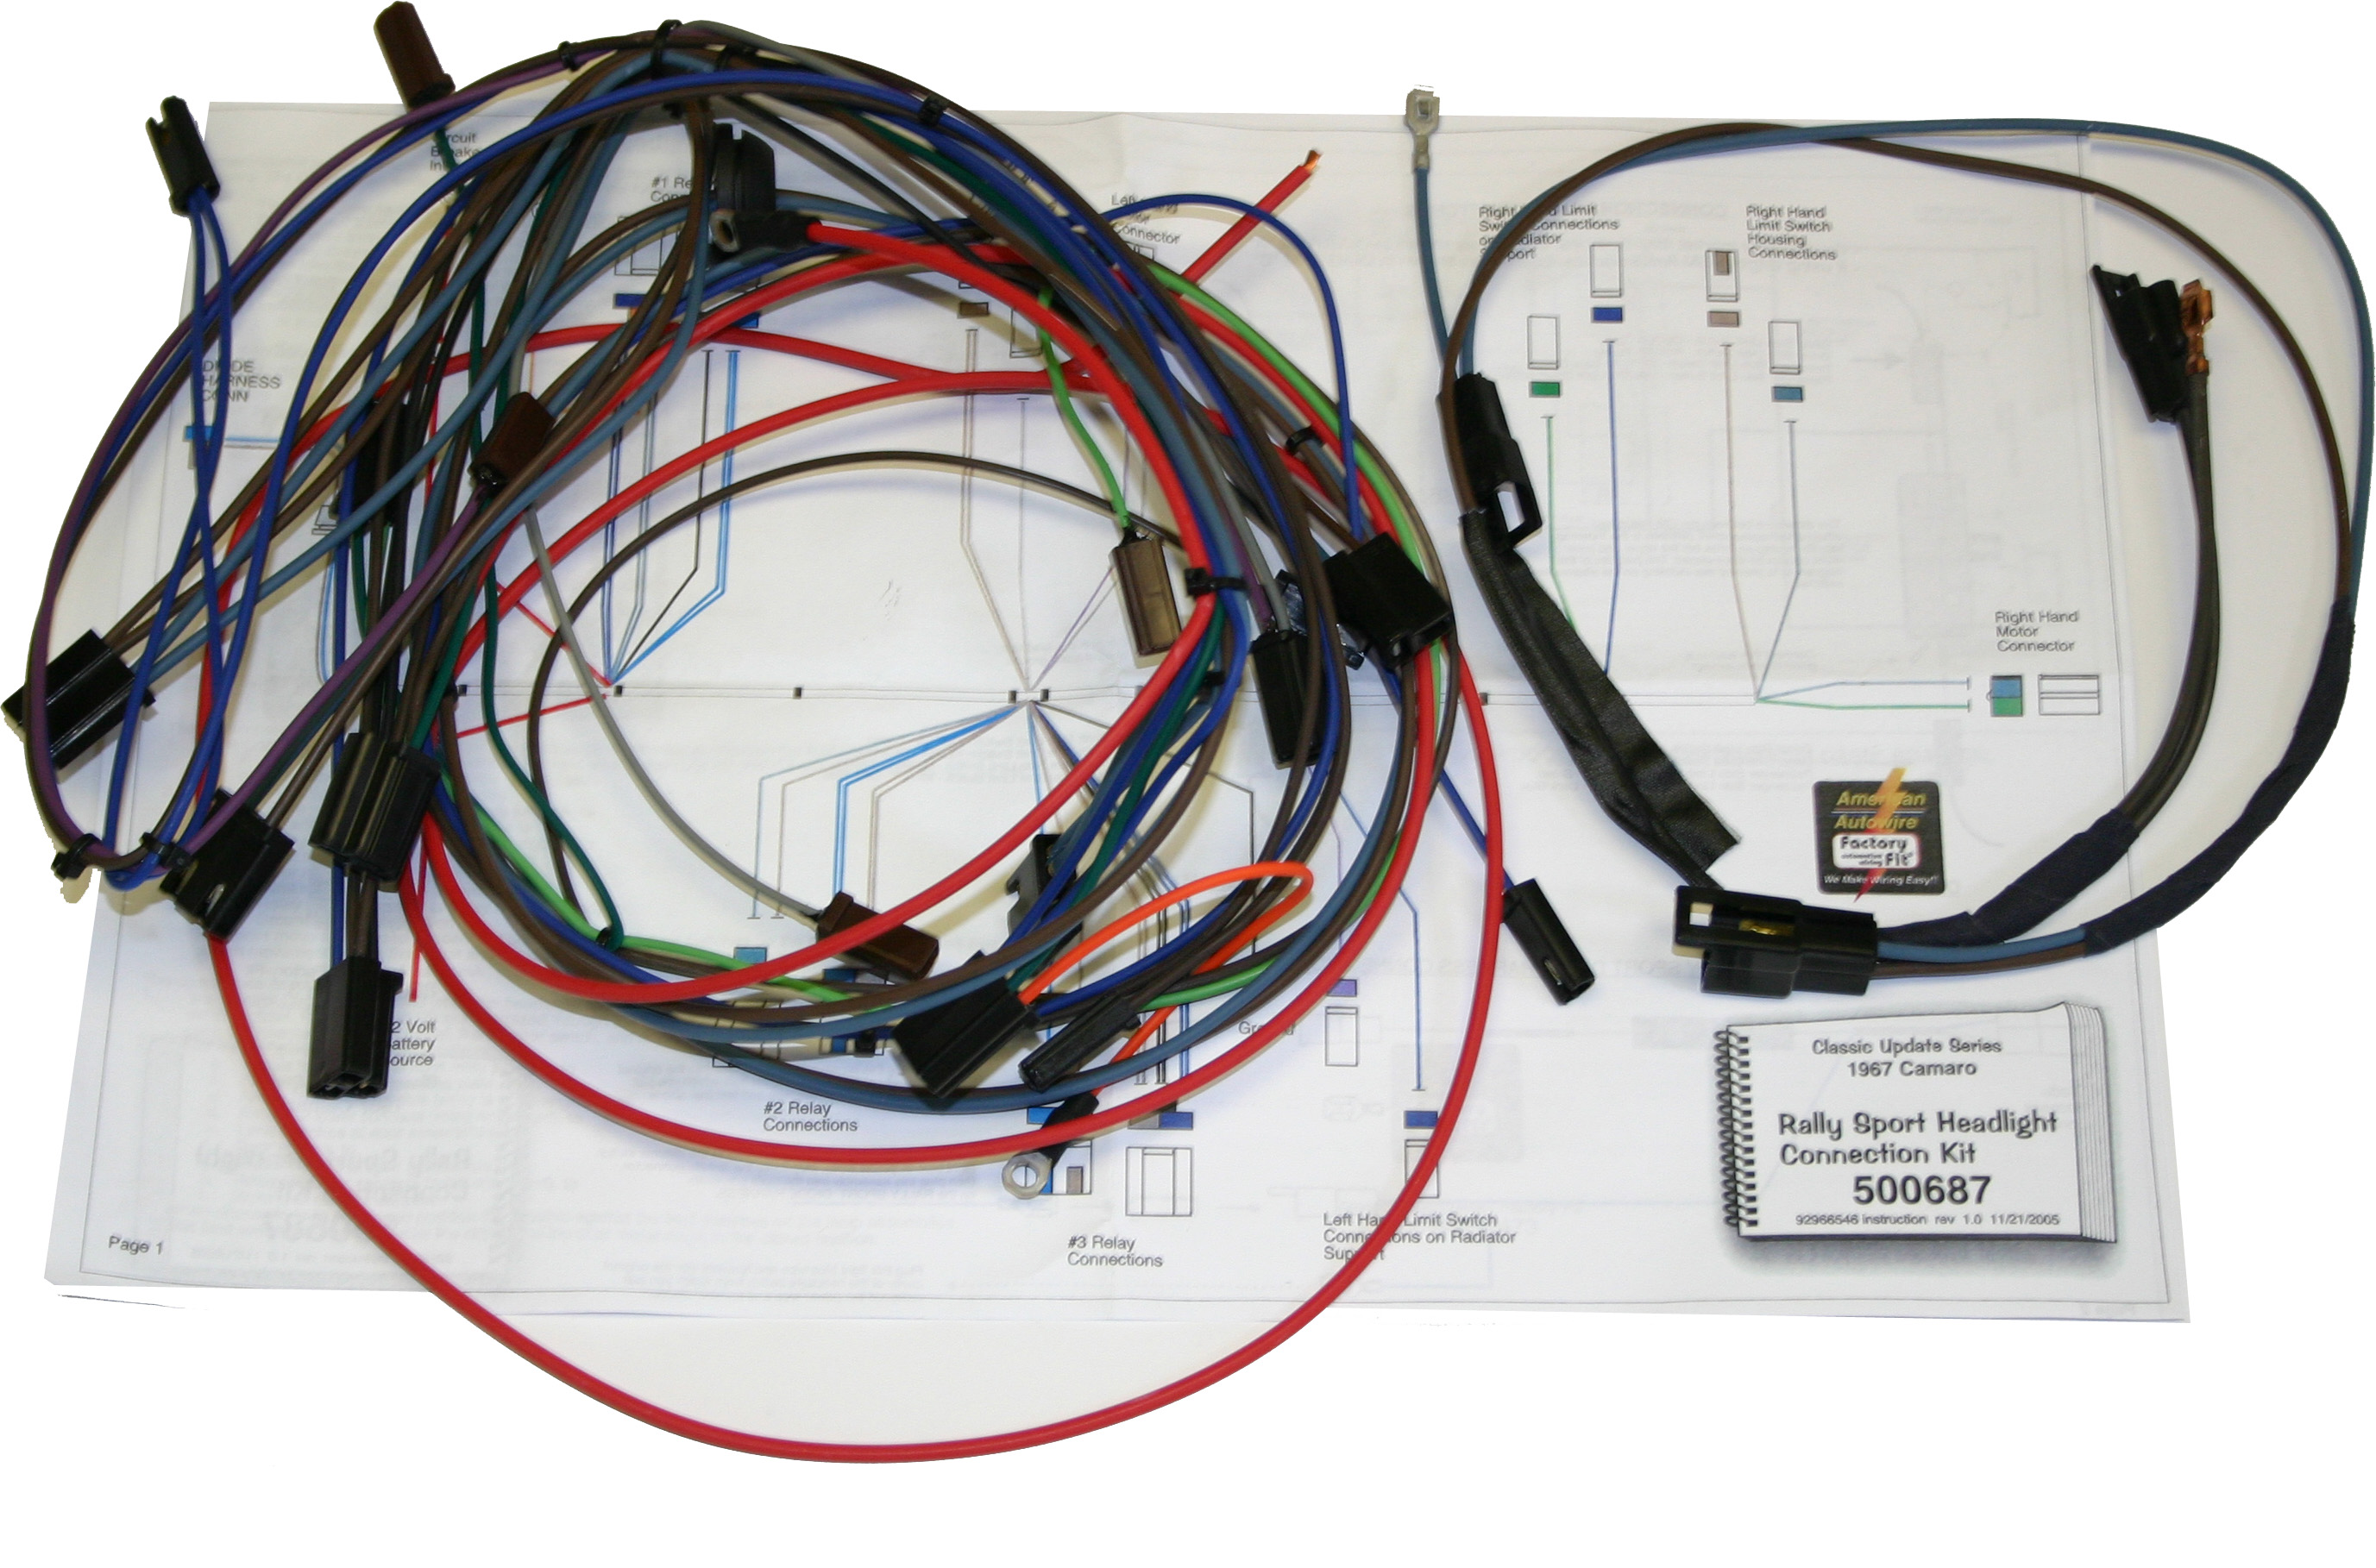 67 68 Camaro Classic Update Wiring Harness 500661 Headlight Relay Kit